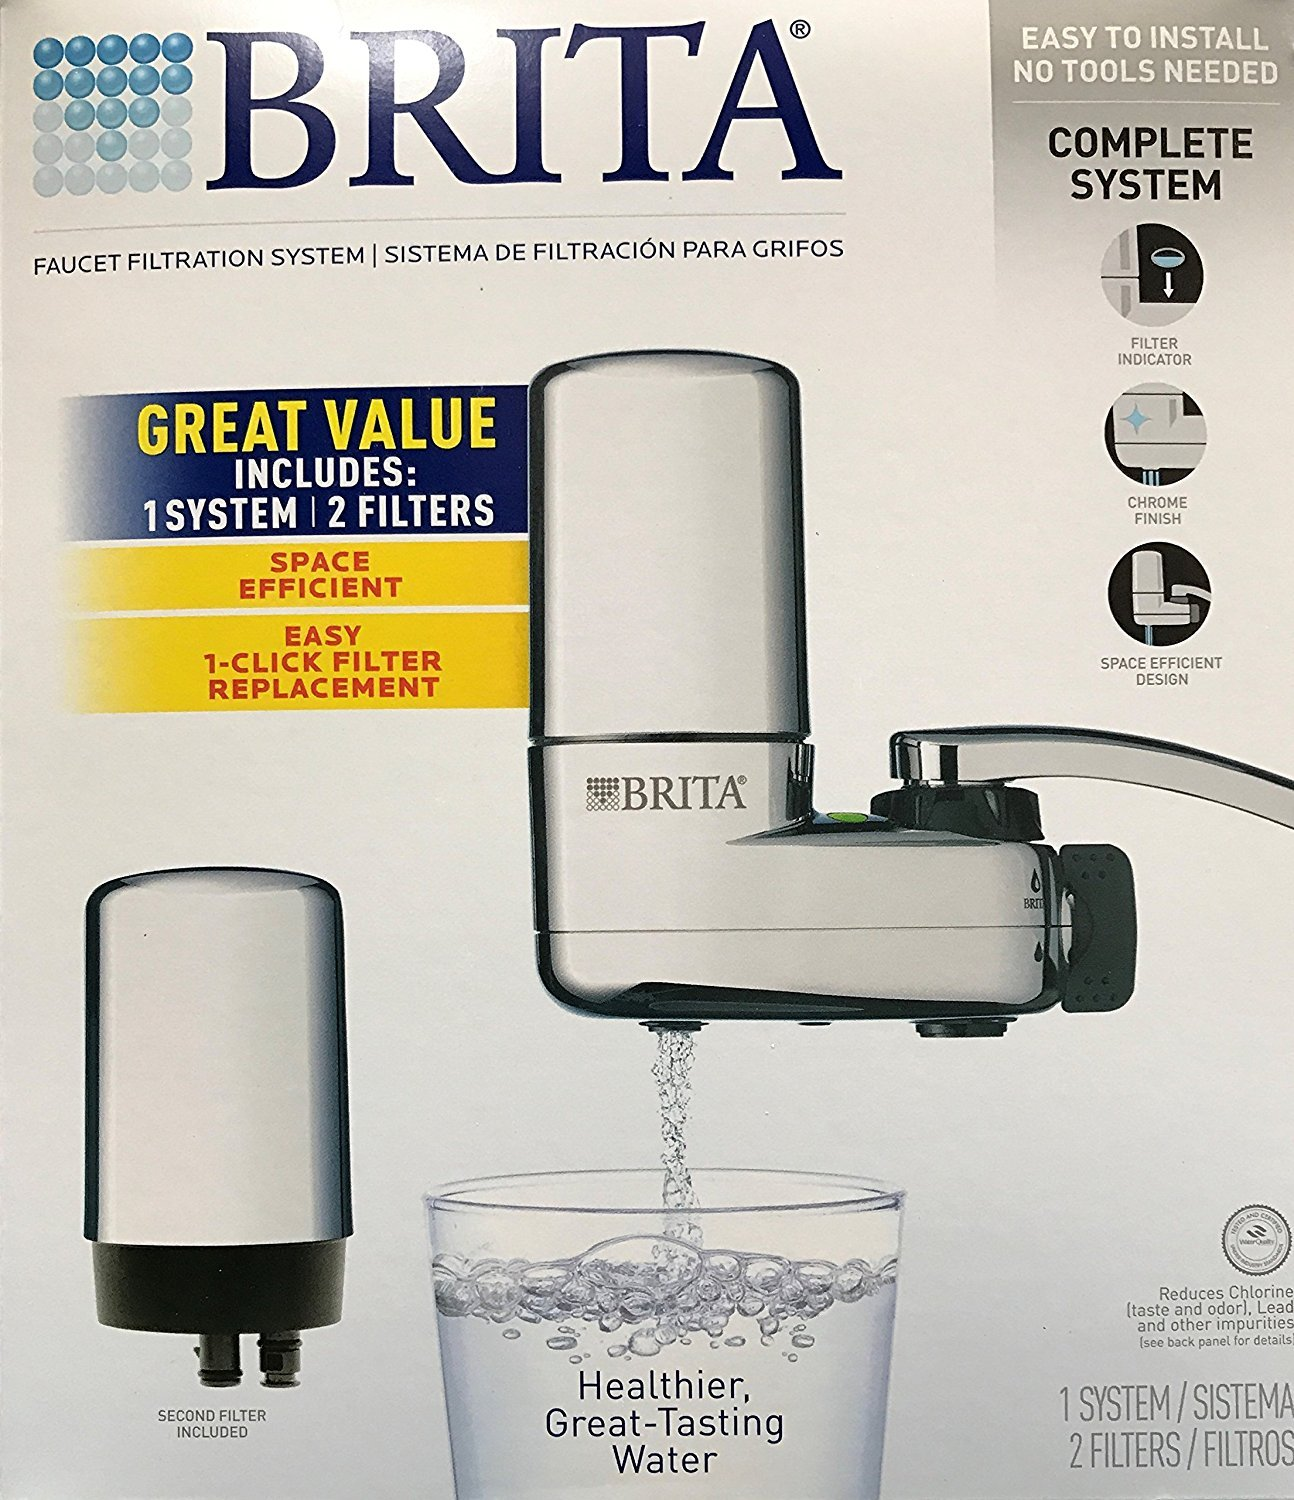 BRITA Chrome Faucet Mount Filtration System, Includes 1 System and 2 ...